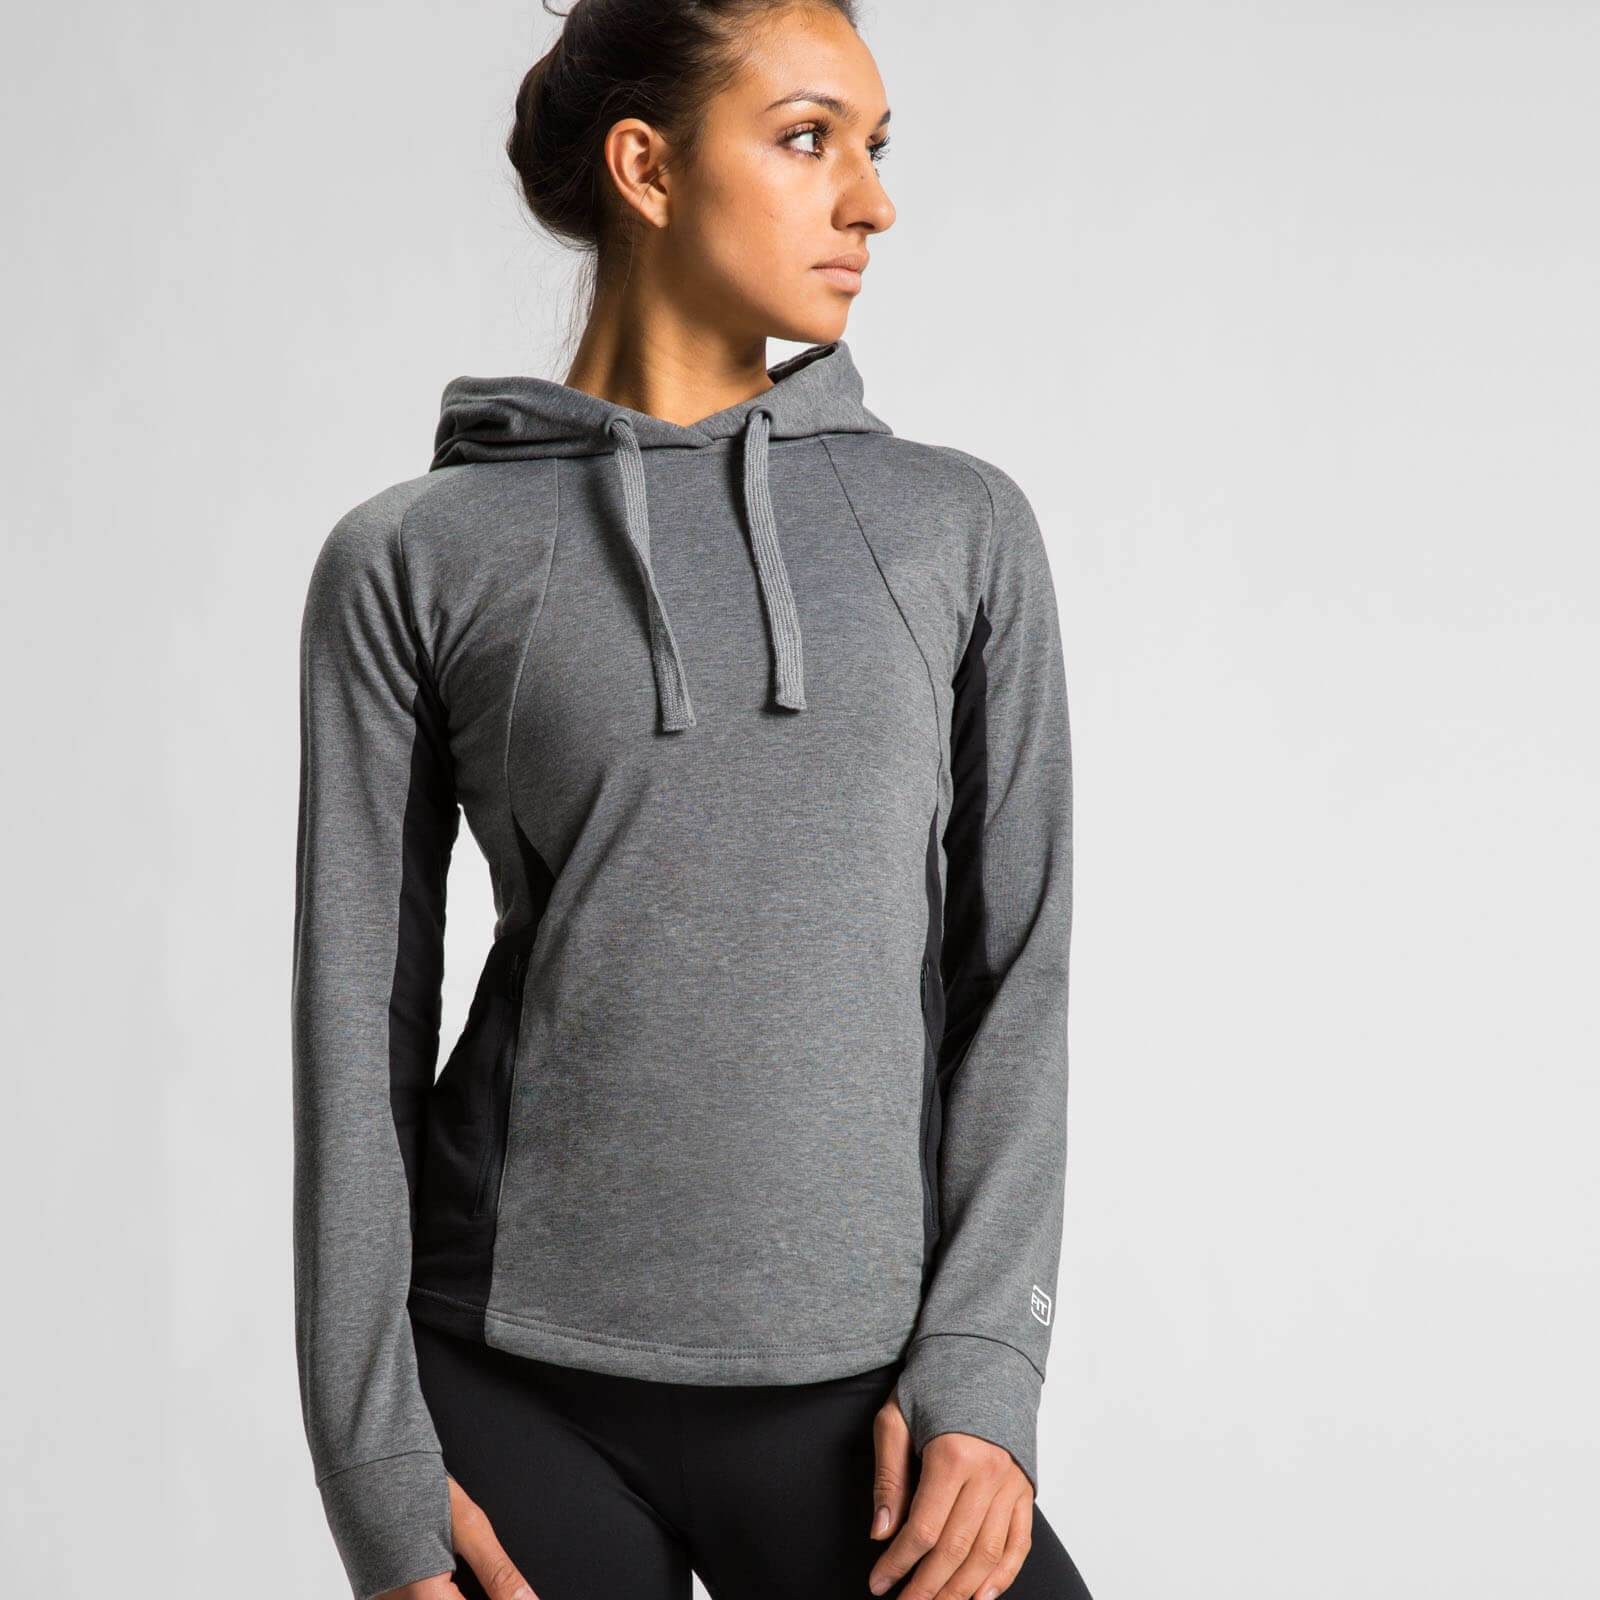 IdealFit Superlite Pullover Hoodie - Charcoal - L - Charcoal